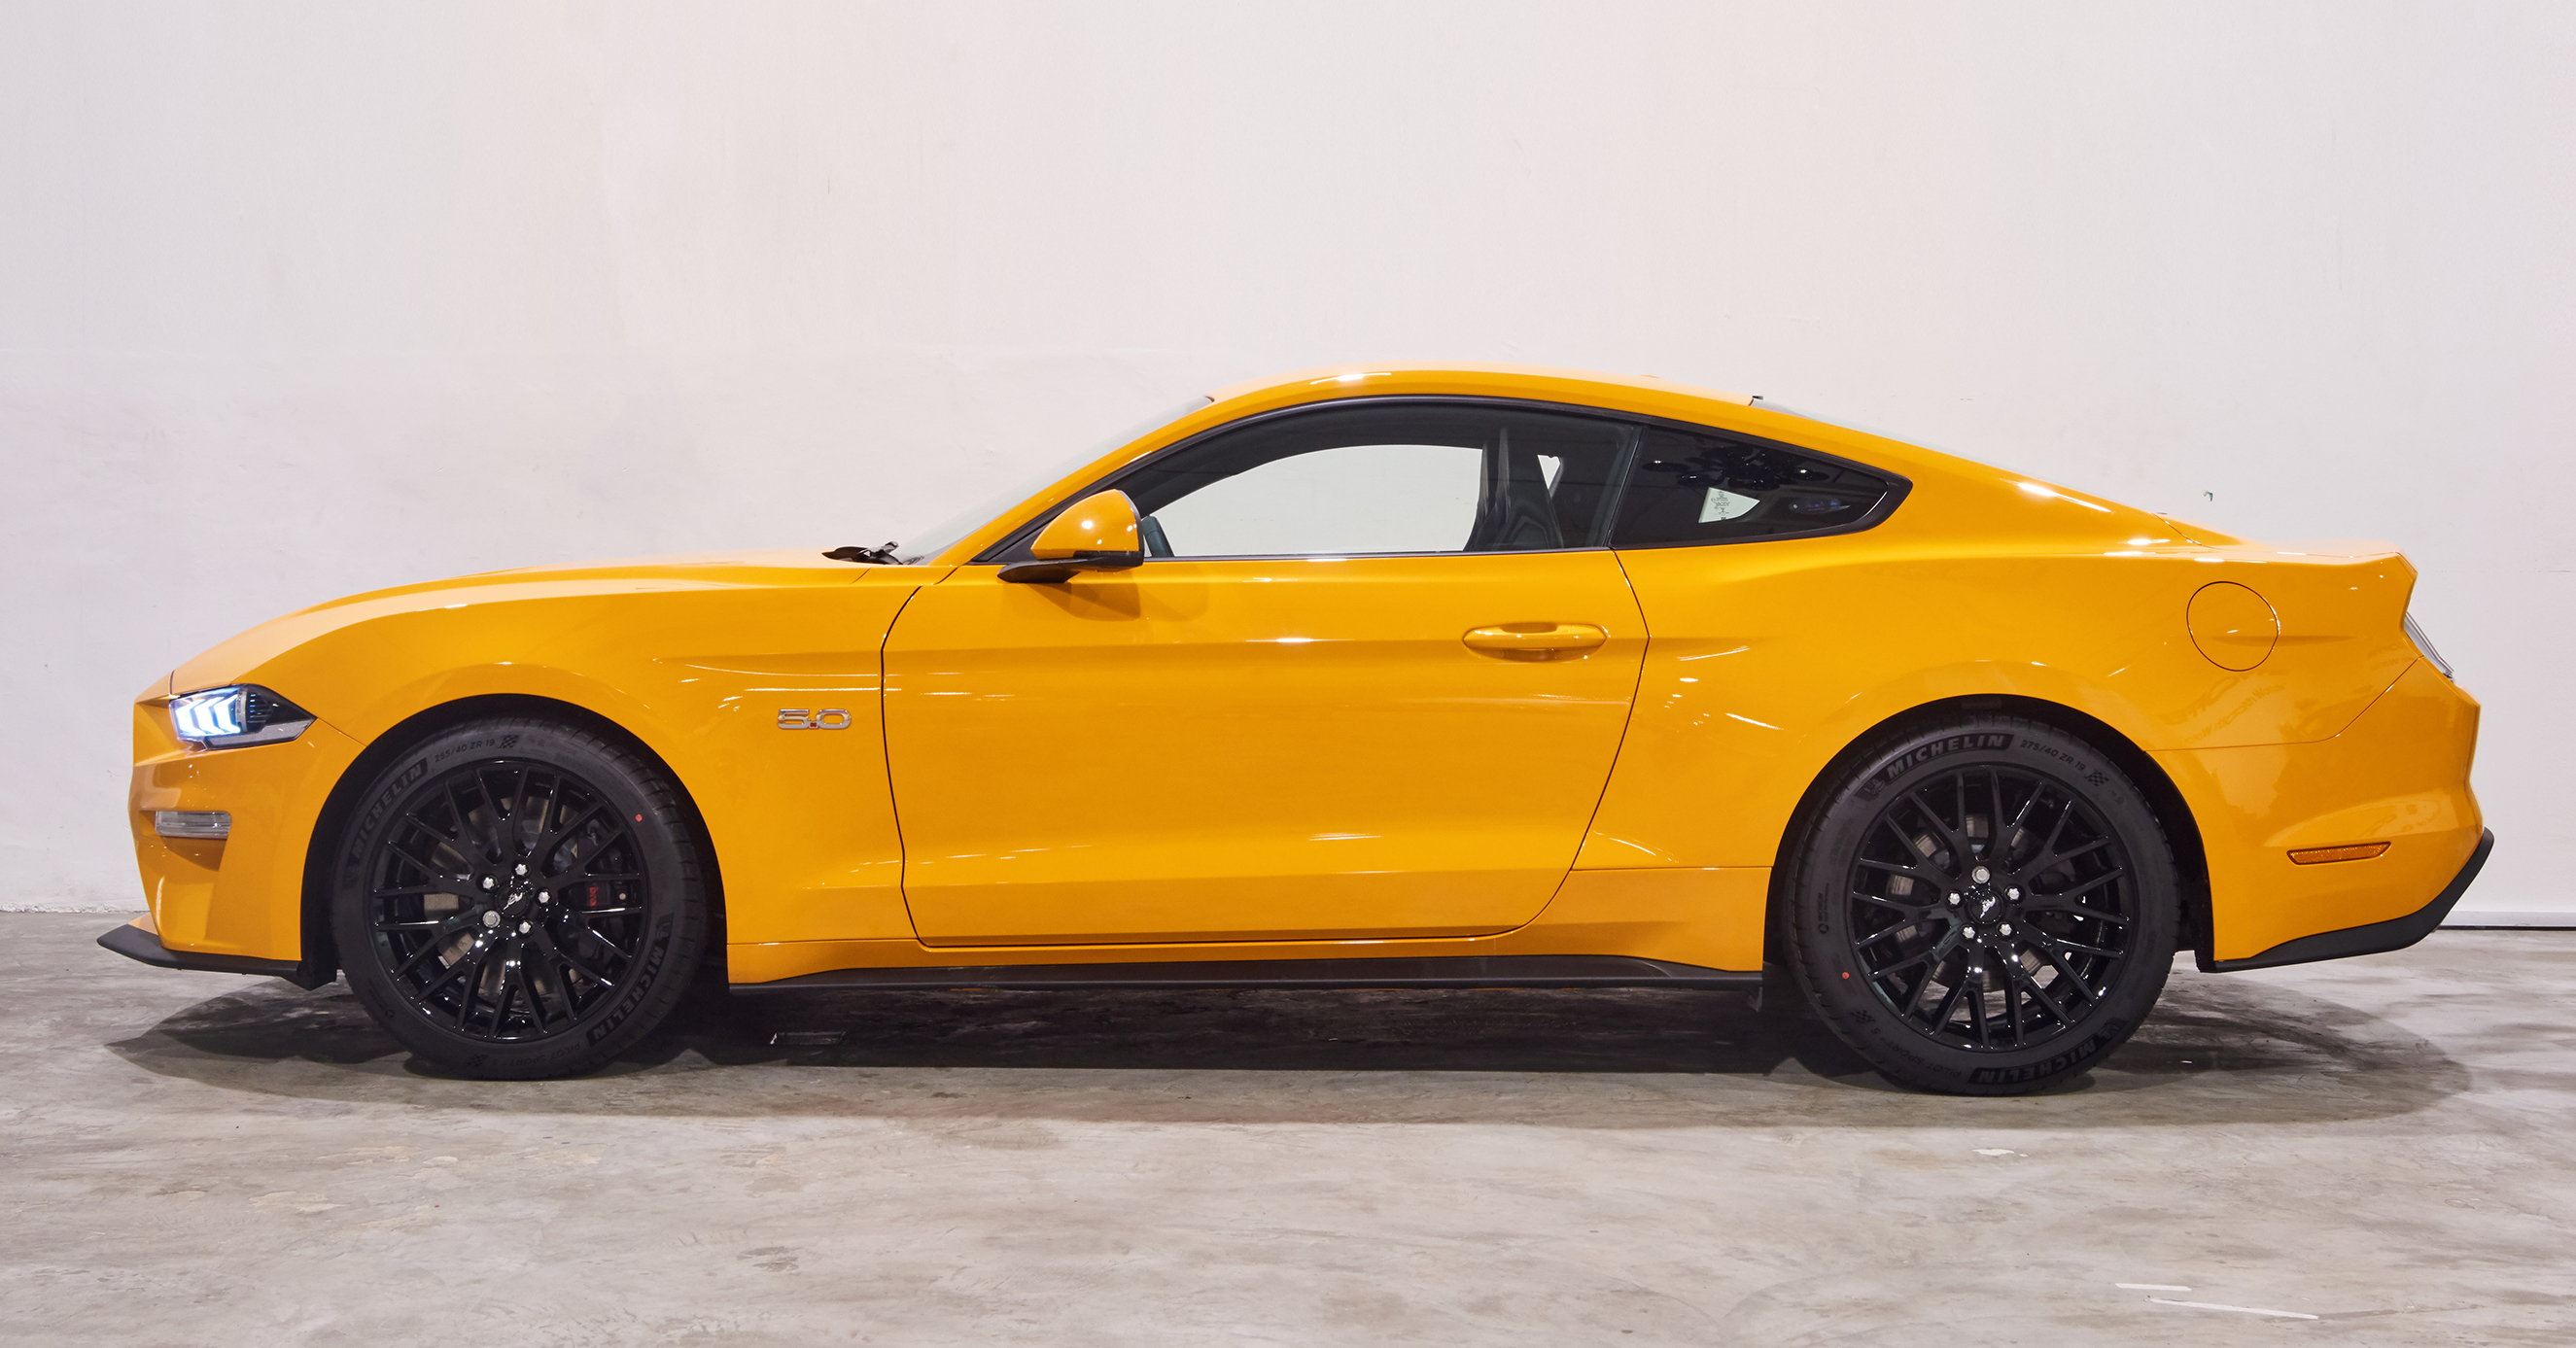 The Ford Mustang is built to provide a balanced performance and engineered to ensure the power is delivered with maximum efficiency. Fastback or Convertible? The choice is yours.